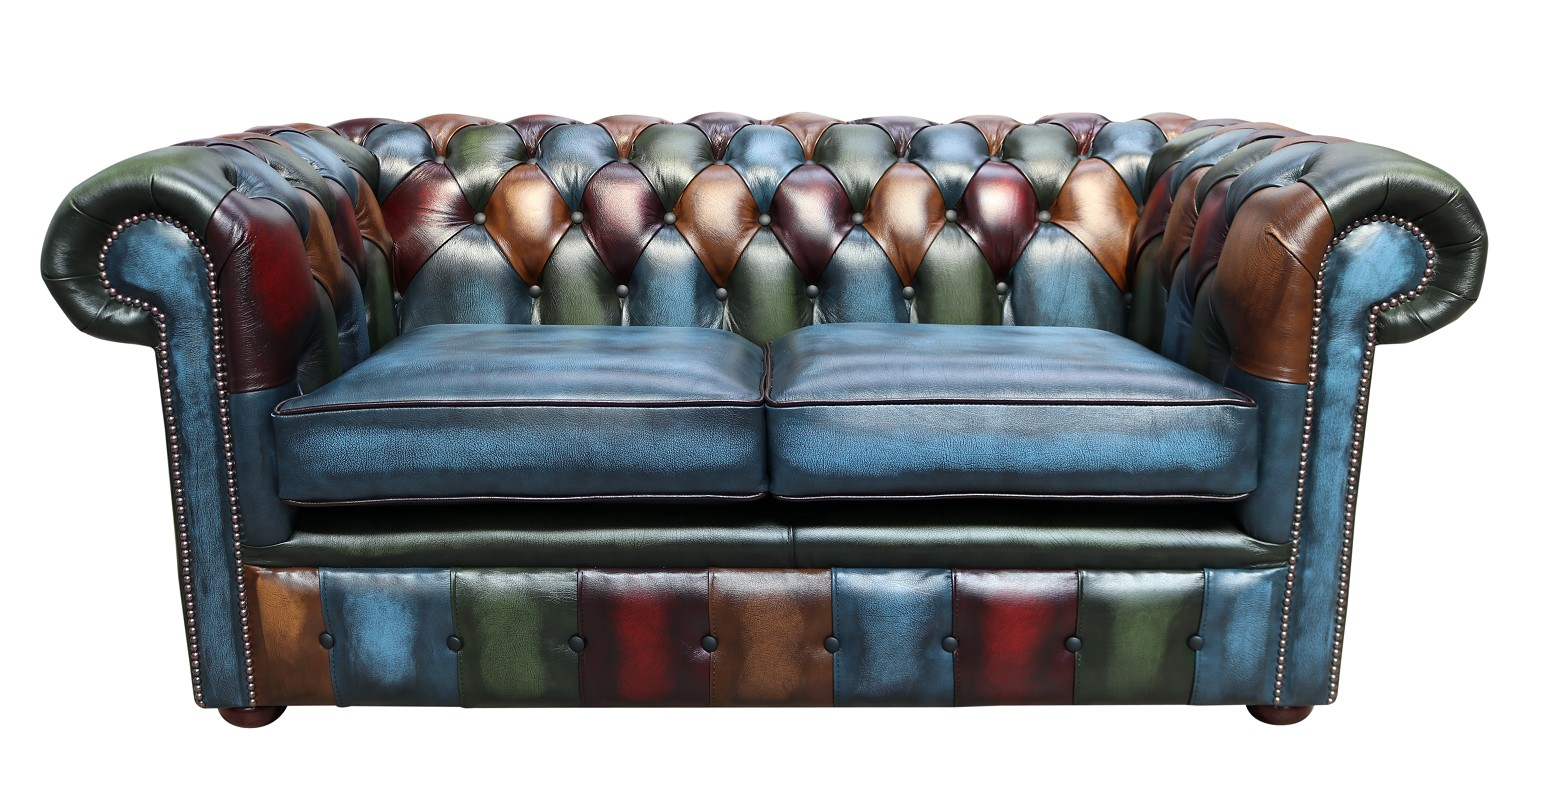 Awe Inspiring Chesterfield Patchwork Antique Blue 2 Seater Settee Leather Sofa Gmtry Best Dining Table And Chair Ideas Images Gmtryco